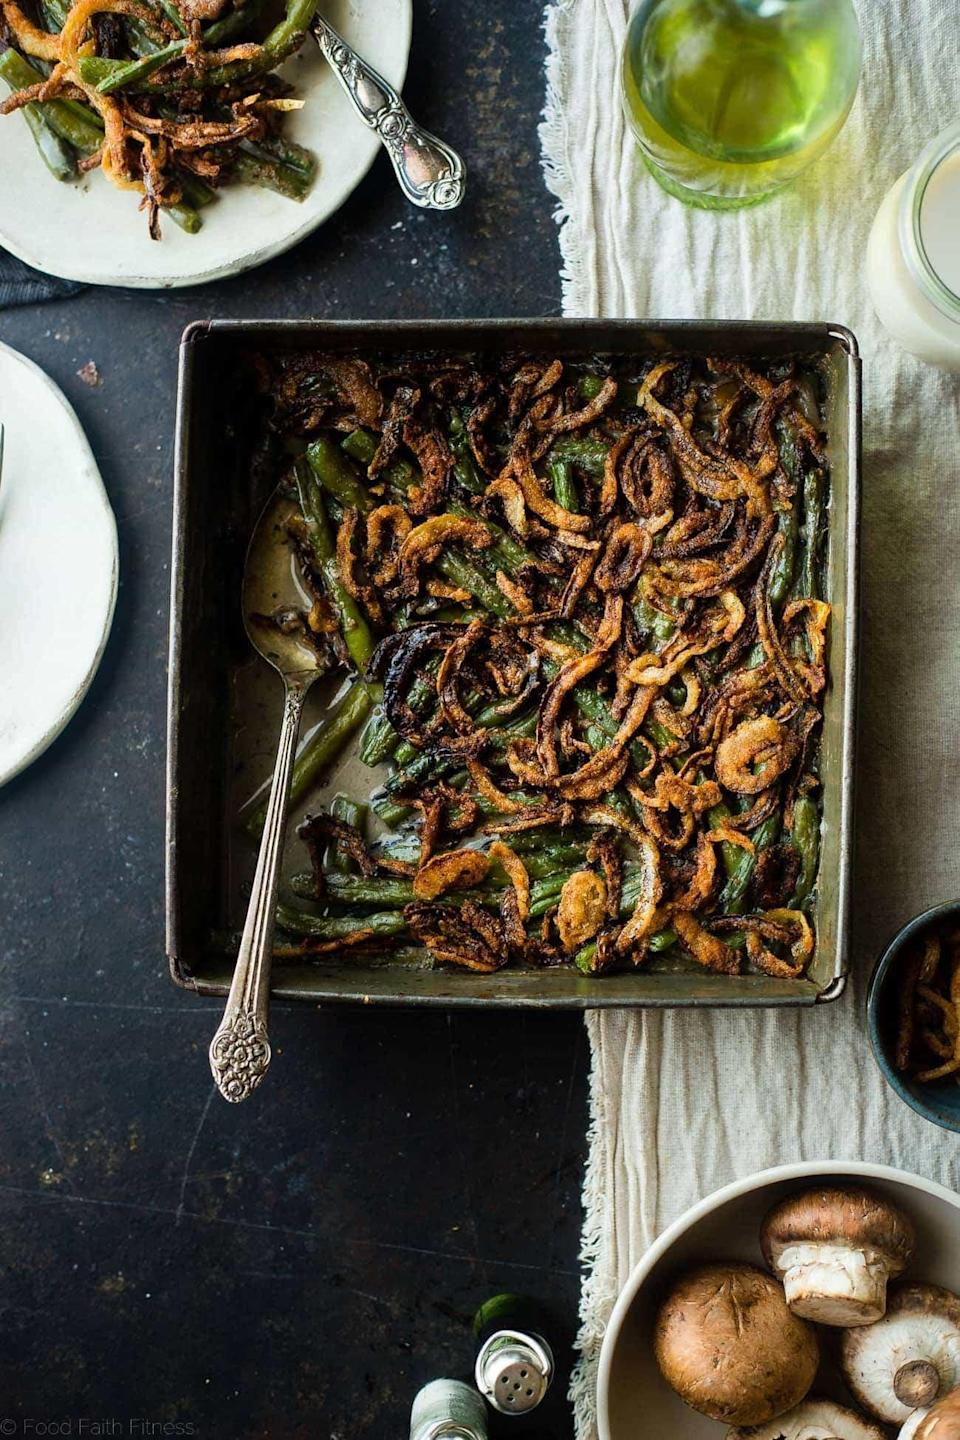 """<p>This recipe may be vegan, but it still has all the flavor you're used to.</p> <p><strong>Get the recipe:</strong> <a href=""""https://www.foodfaithfitness.com/healthy-vegan-green-bean-casserole/"""" class=""""link rapid-noclick-resp"""" rel=""""nofollow noopener"""" target=""""_blank"""" data-ylk=""""slk:vegan green bean casserole"""">vegan green bean casserole</a></p>"""